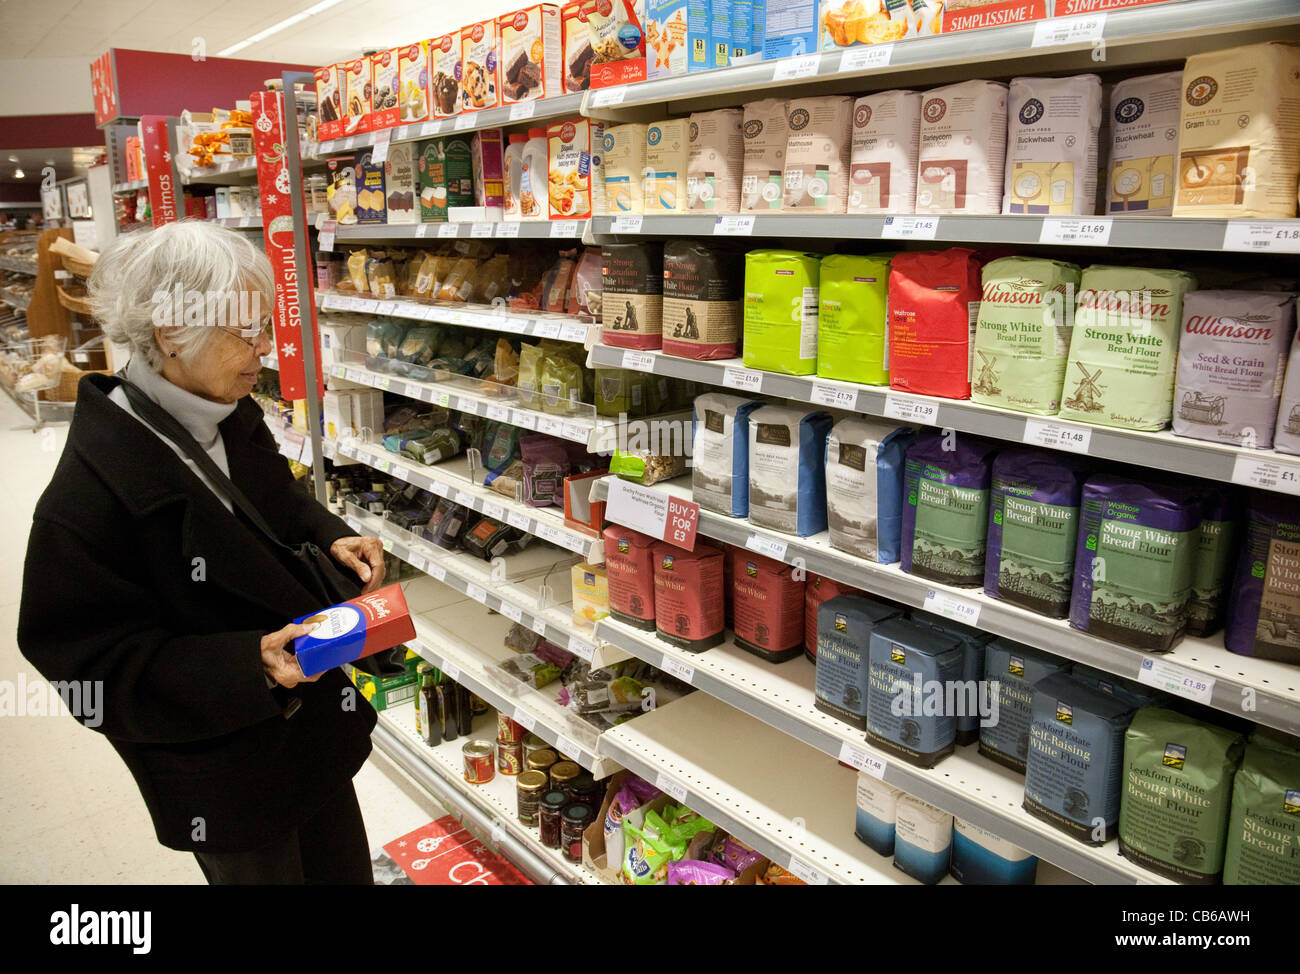 Old woman shopping for  flour in a supermarket aisle, UK - Stock Image